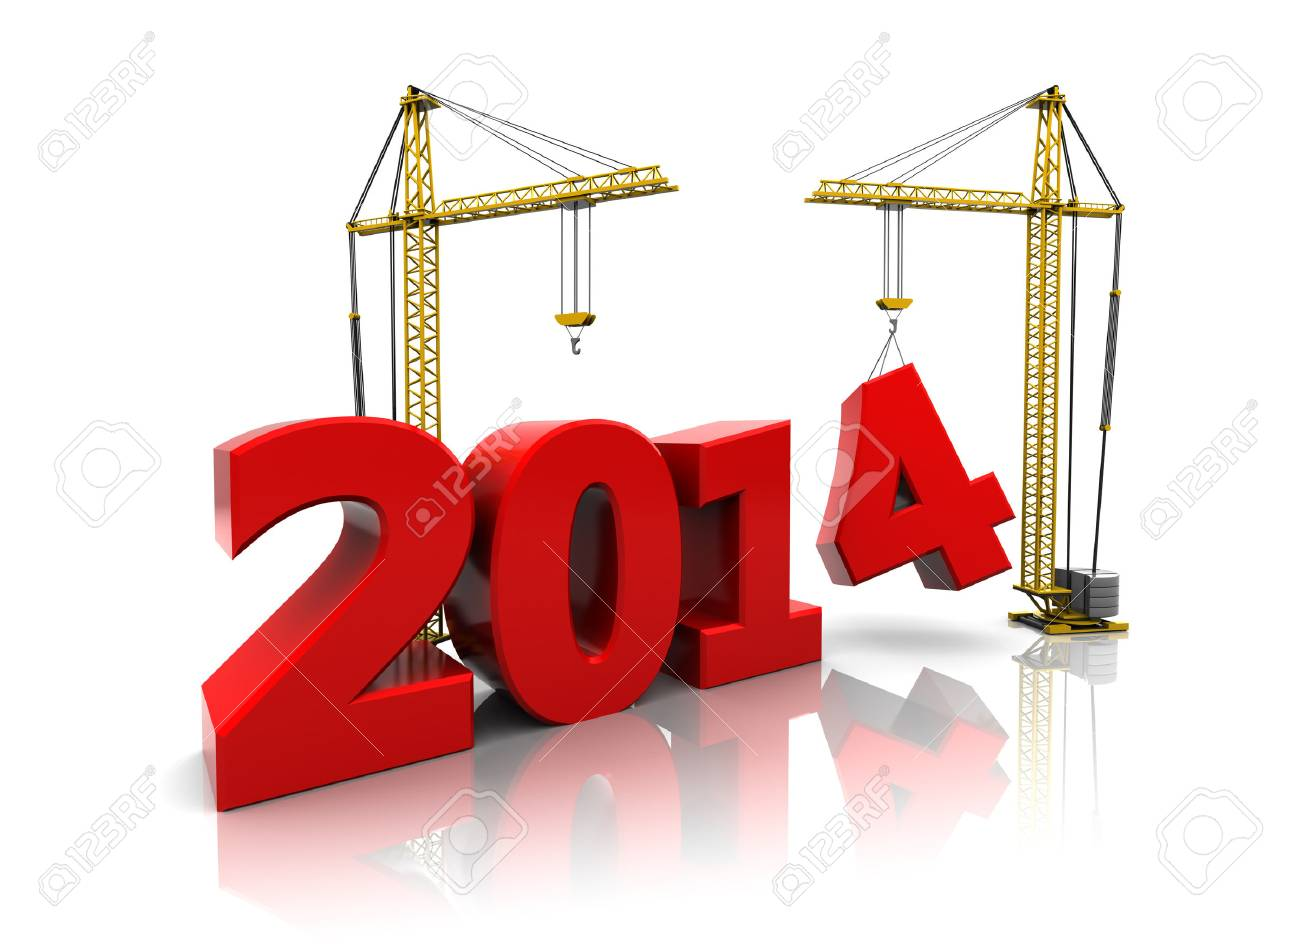 3d illustration of two cranes building new year 2014 sign - 22920088